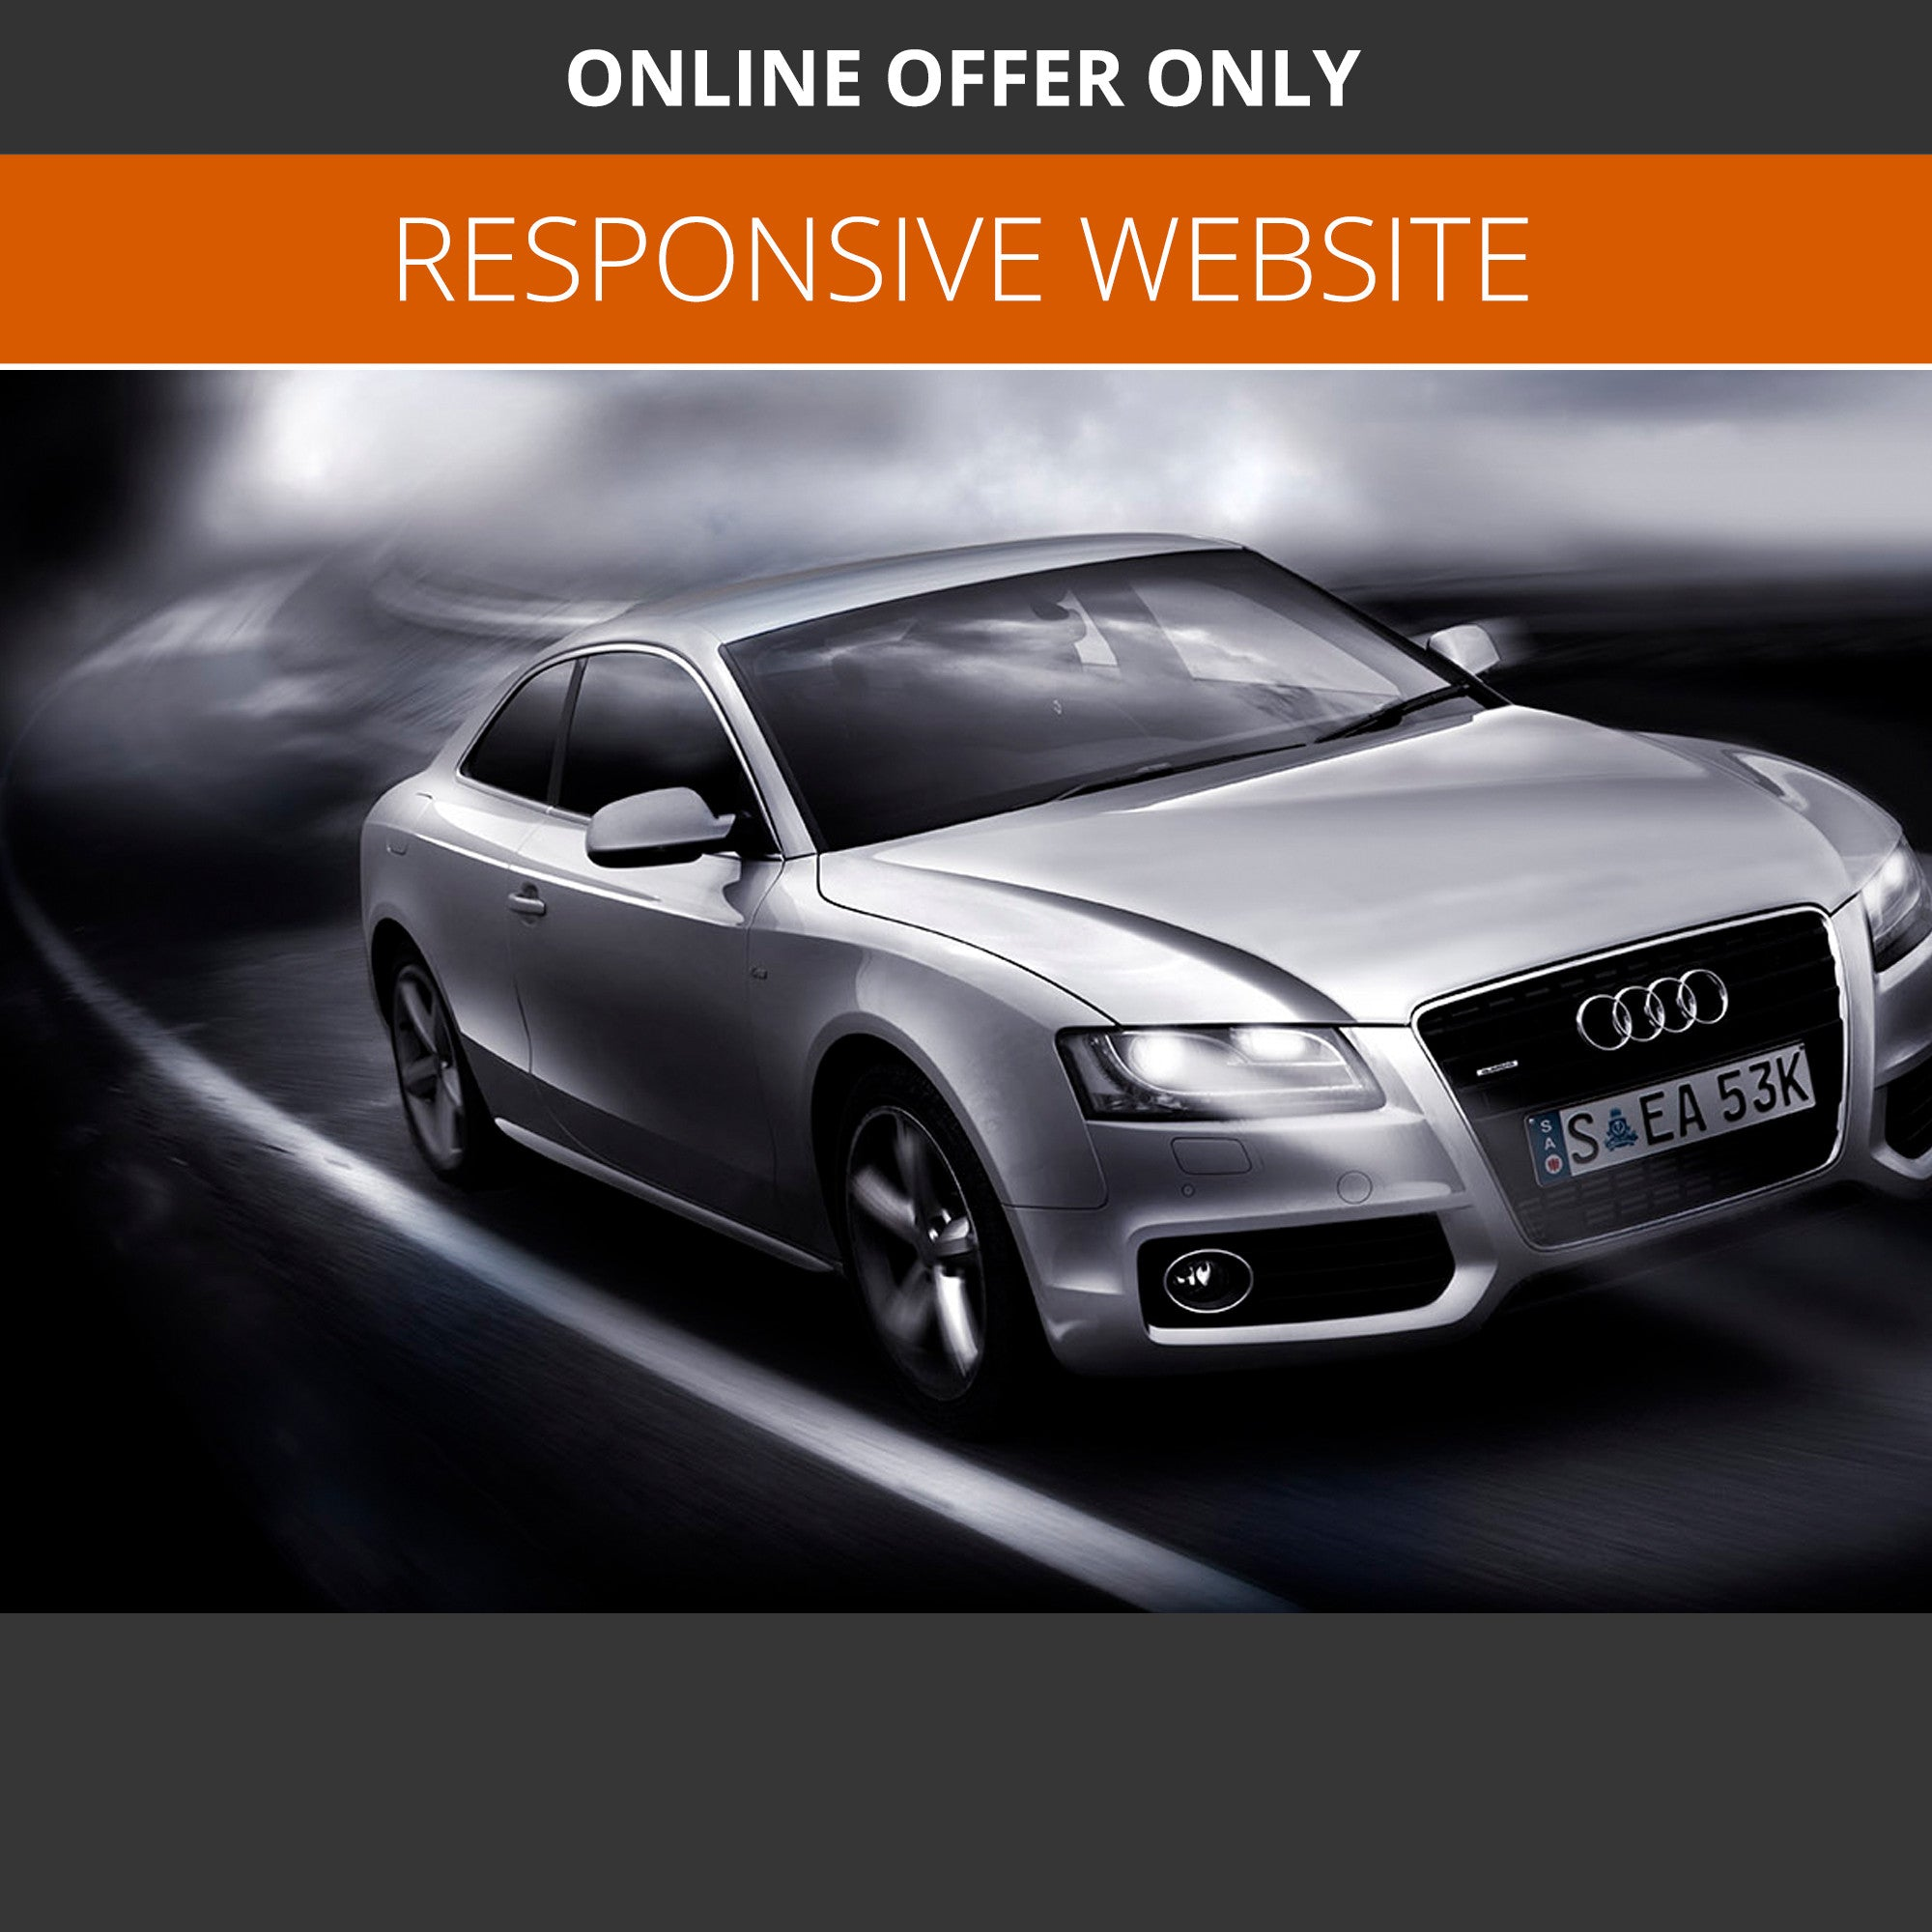 RED PACKAGE - NEW CAR CAR DEALER WEBSITE